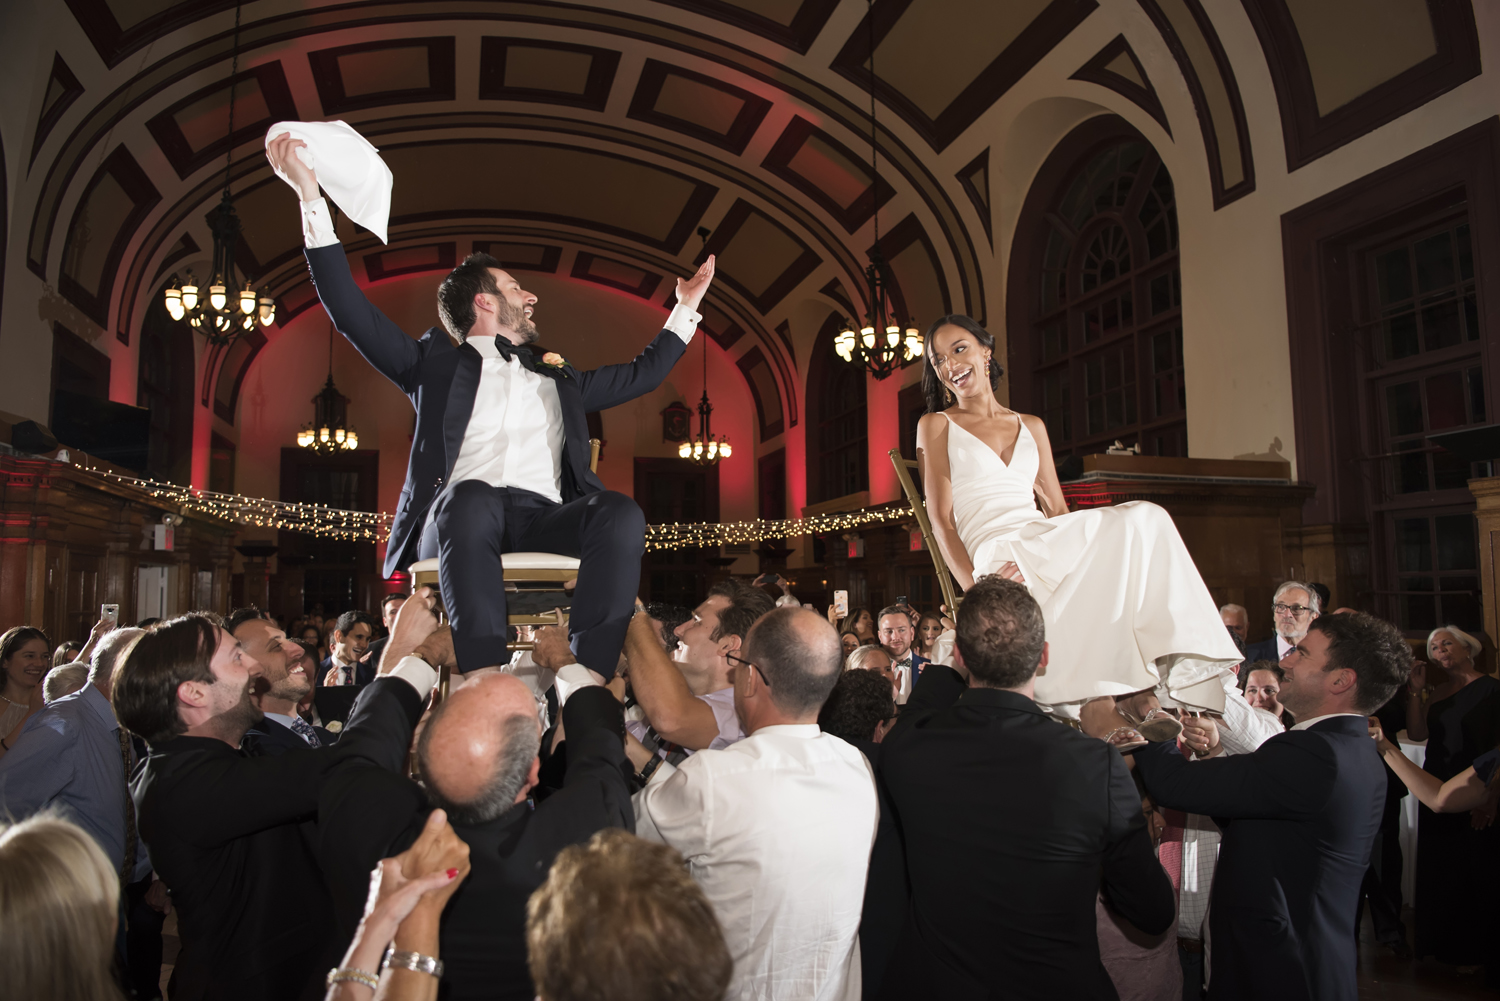 Bride and groom during the hora on their wedding day at Celebrate Snug Harbor in Staten Island